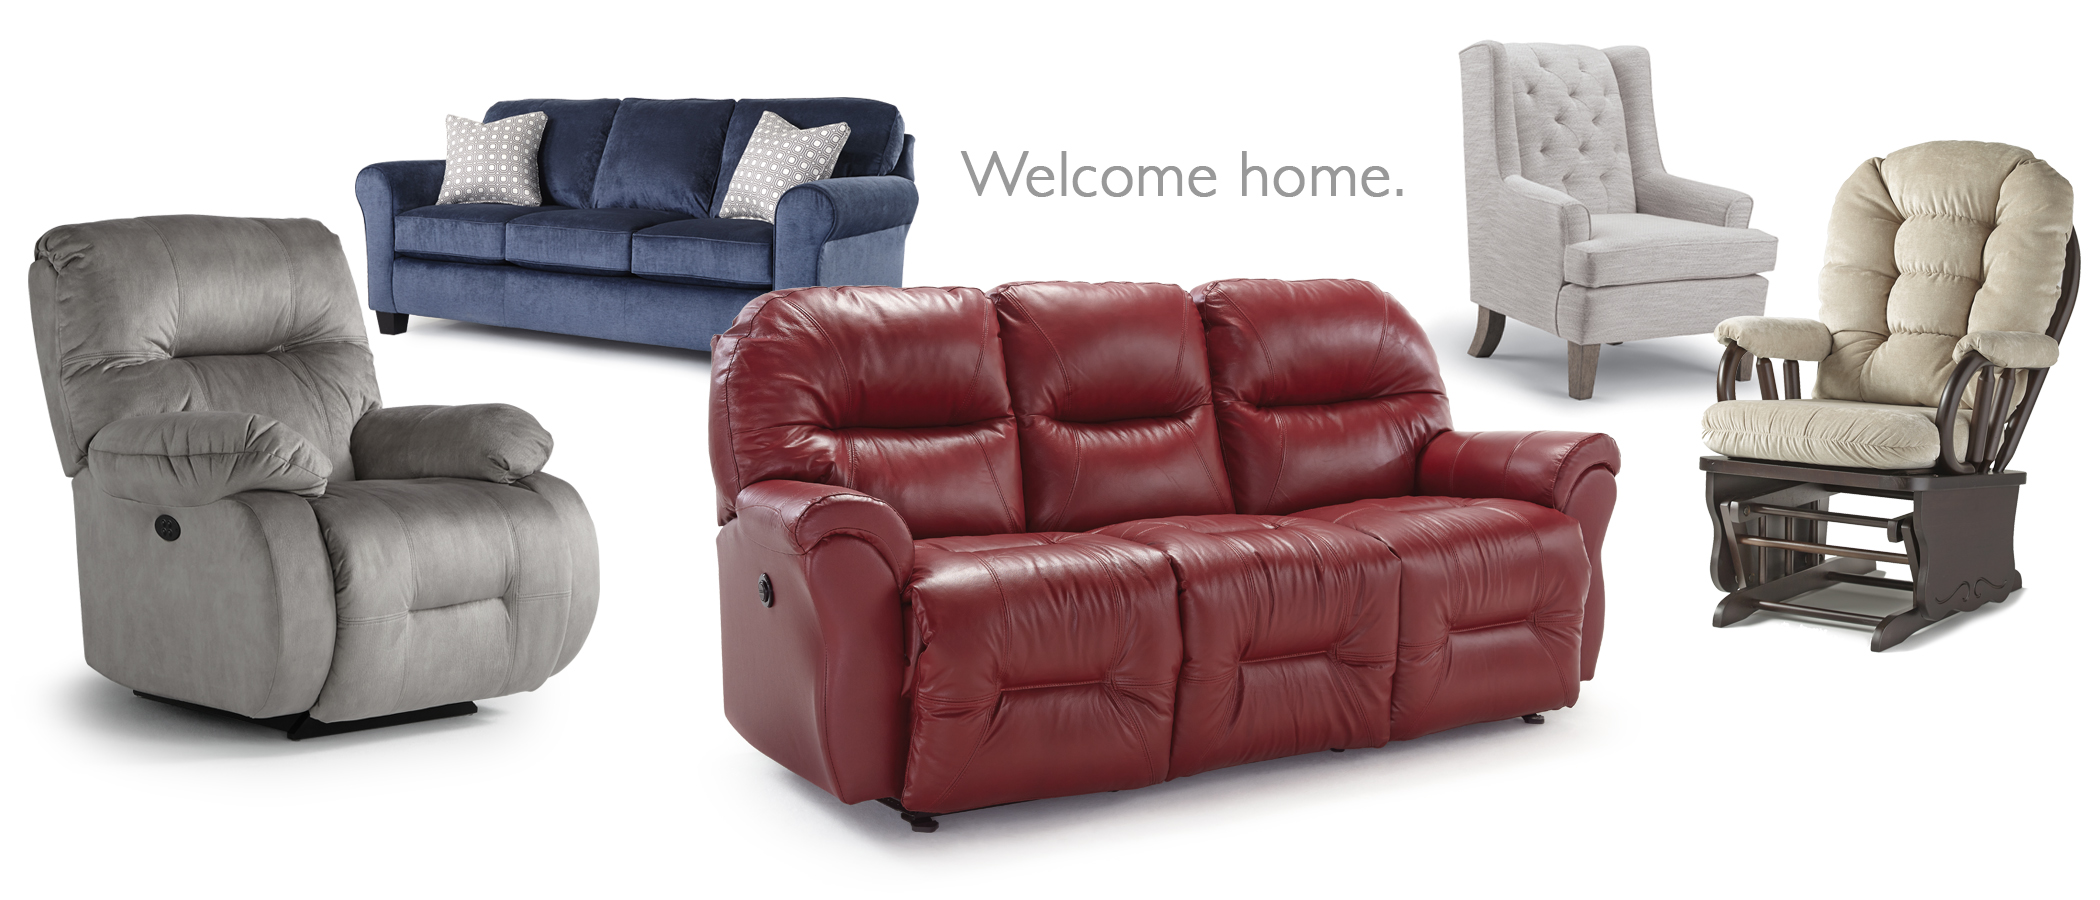 Home best home furnishings for Best living room furniture reviews